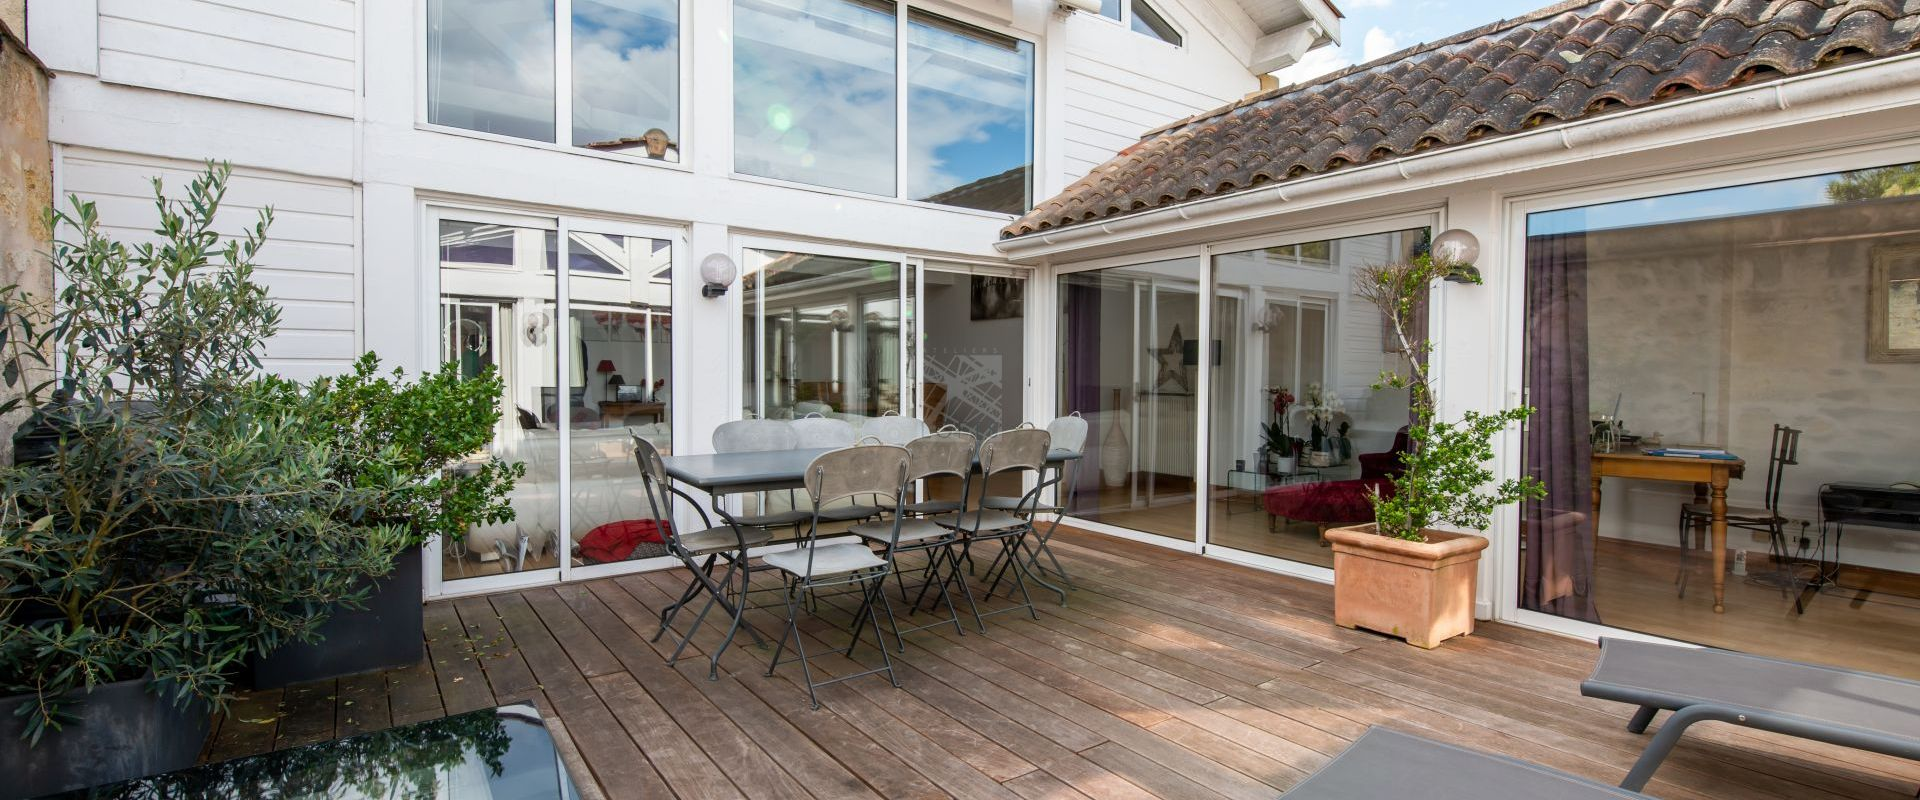 loft barriere judaique terrasse